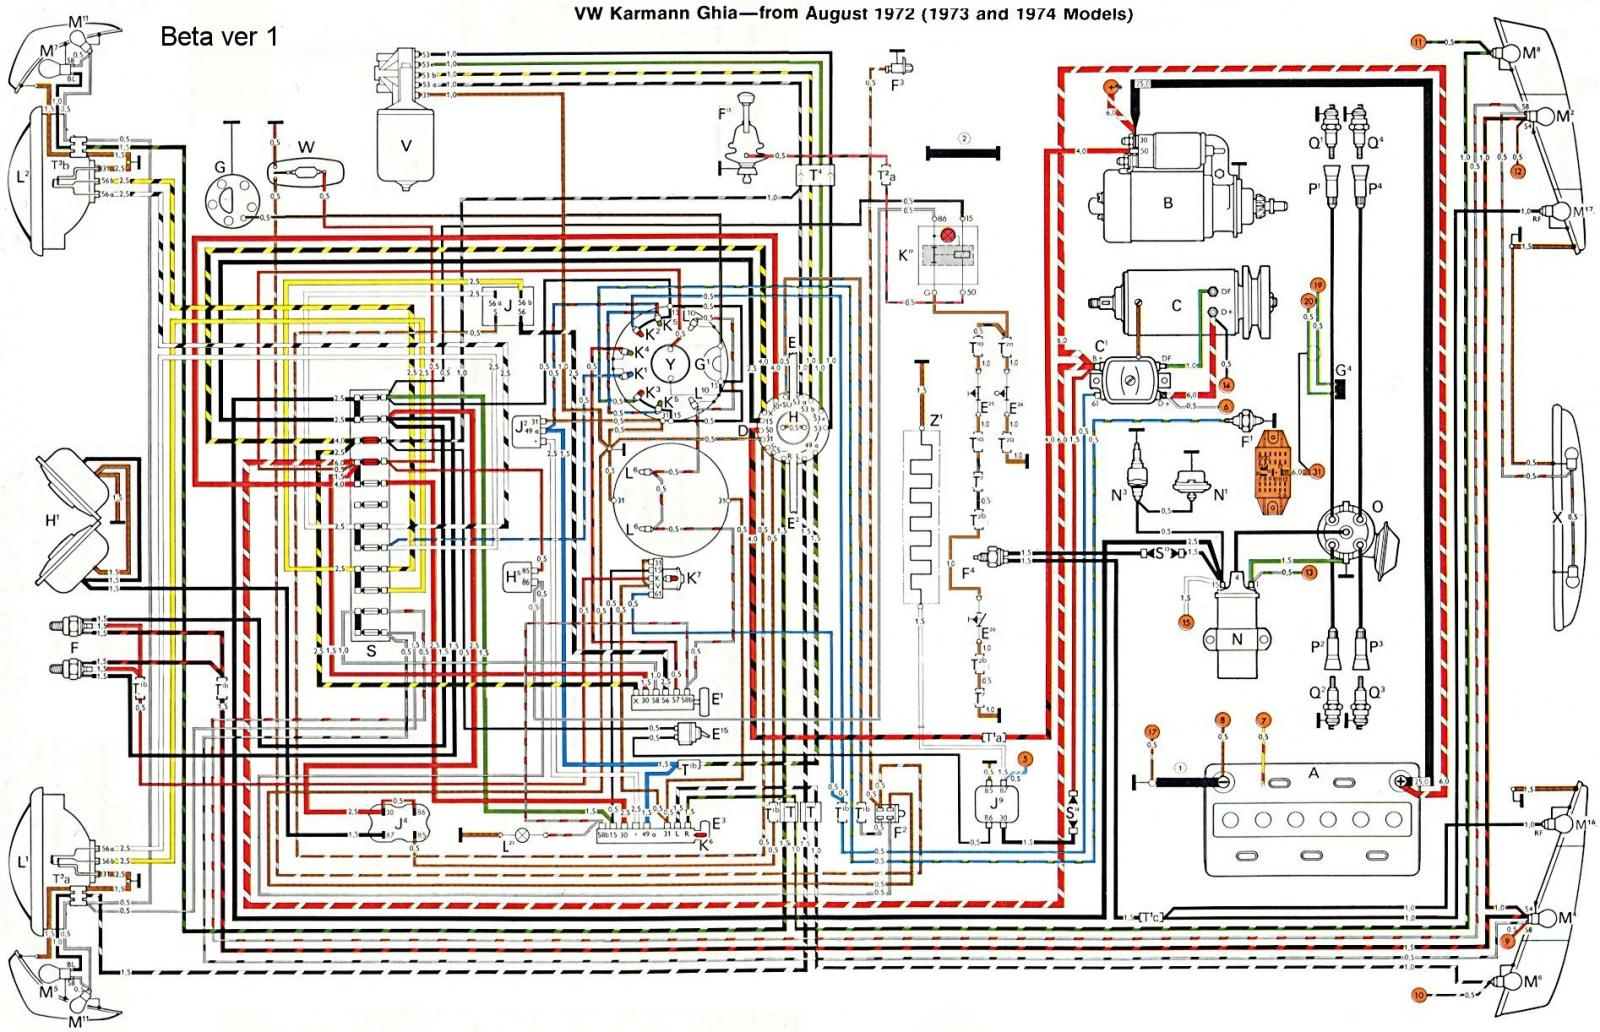 1188328 thesamba com ghia view topic 73 74 wiring diagram 1980 porsche 911 wiring diagram at edmiracle.co